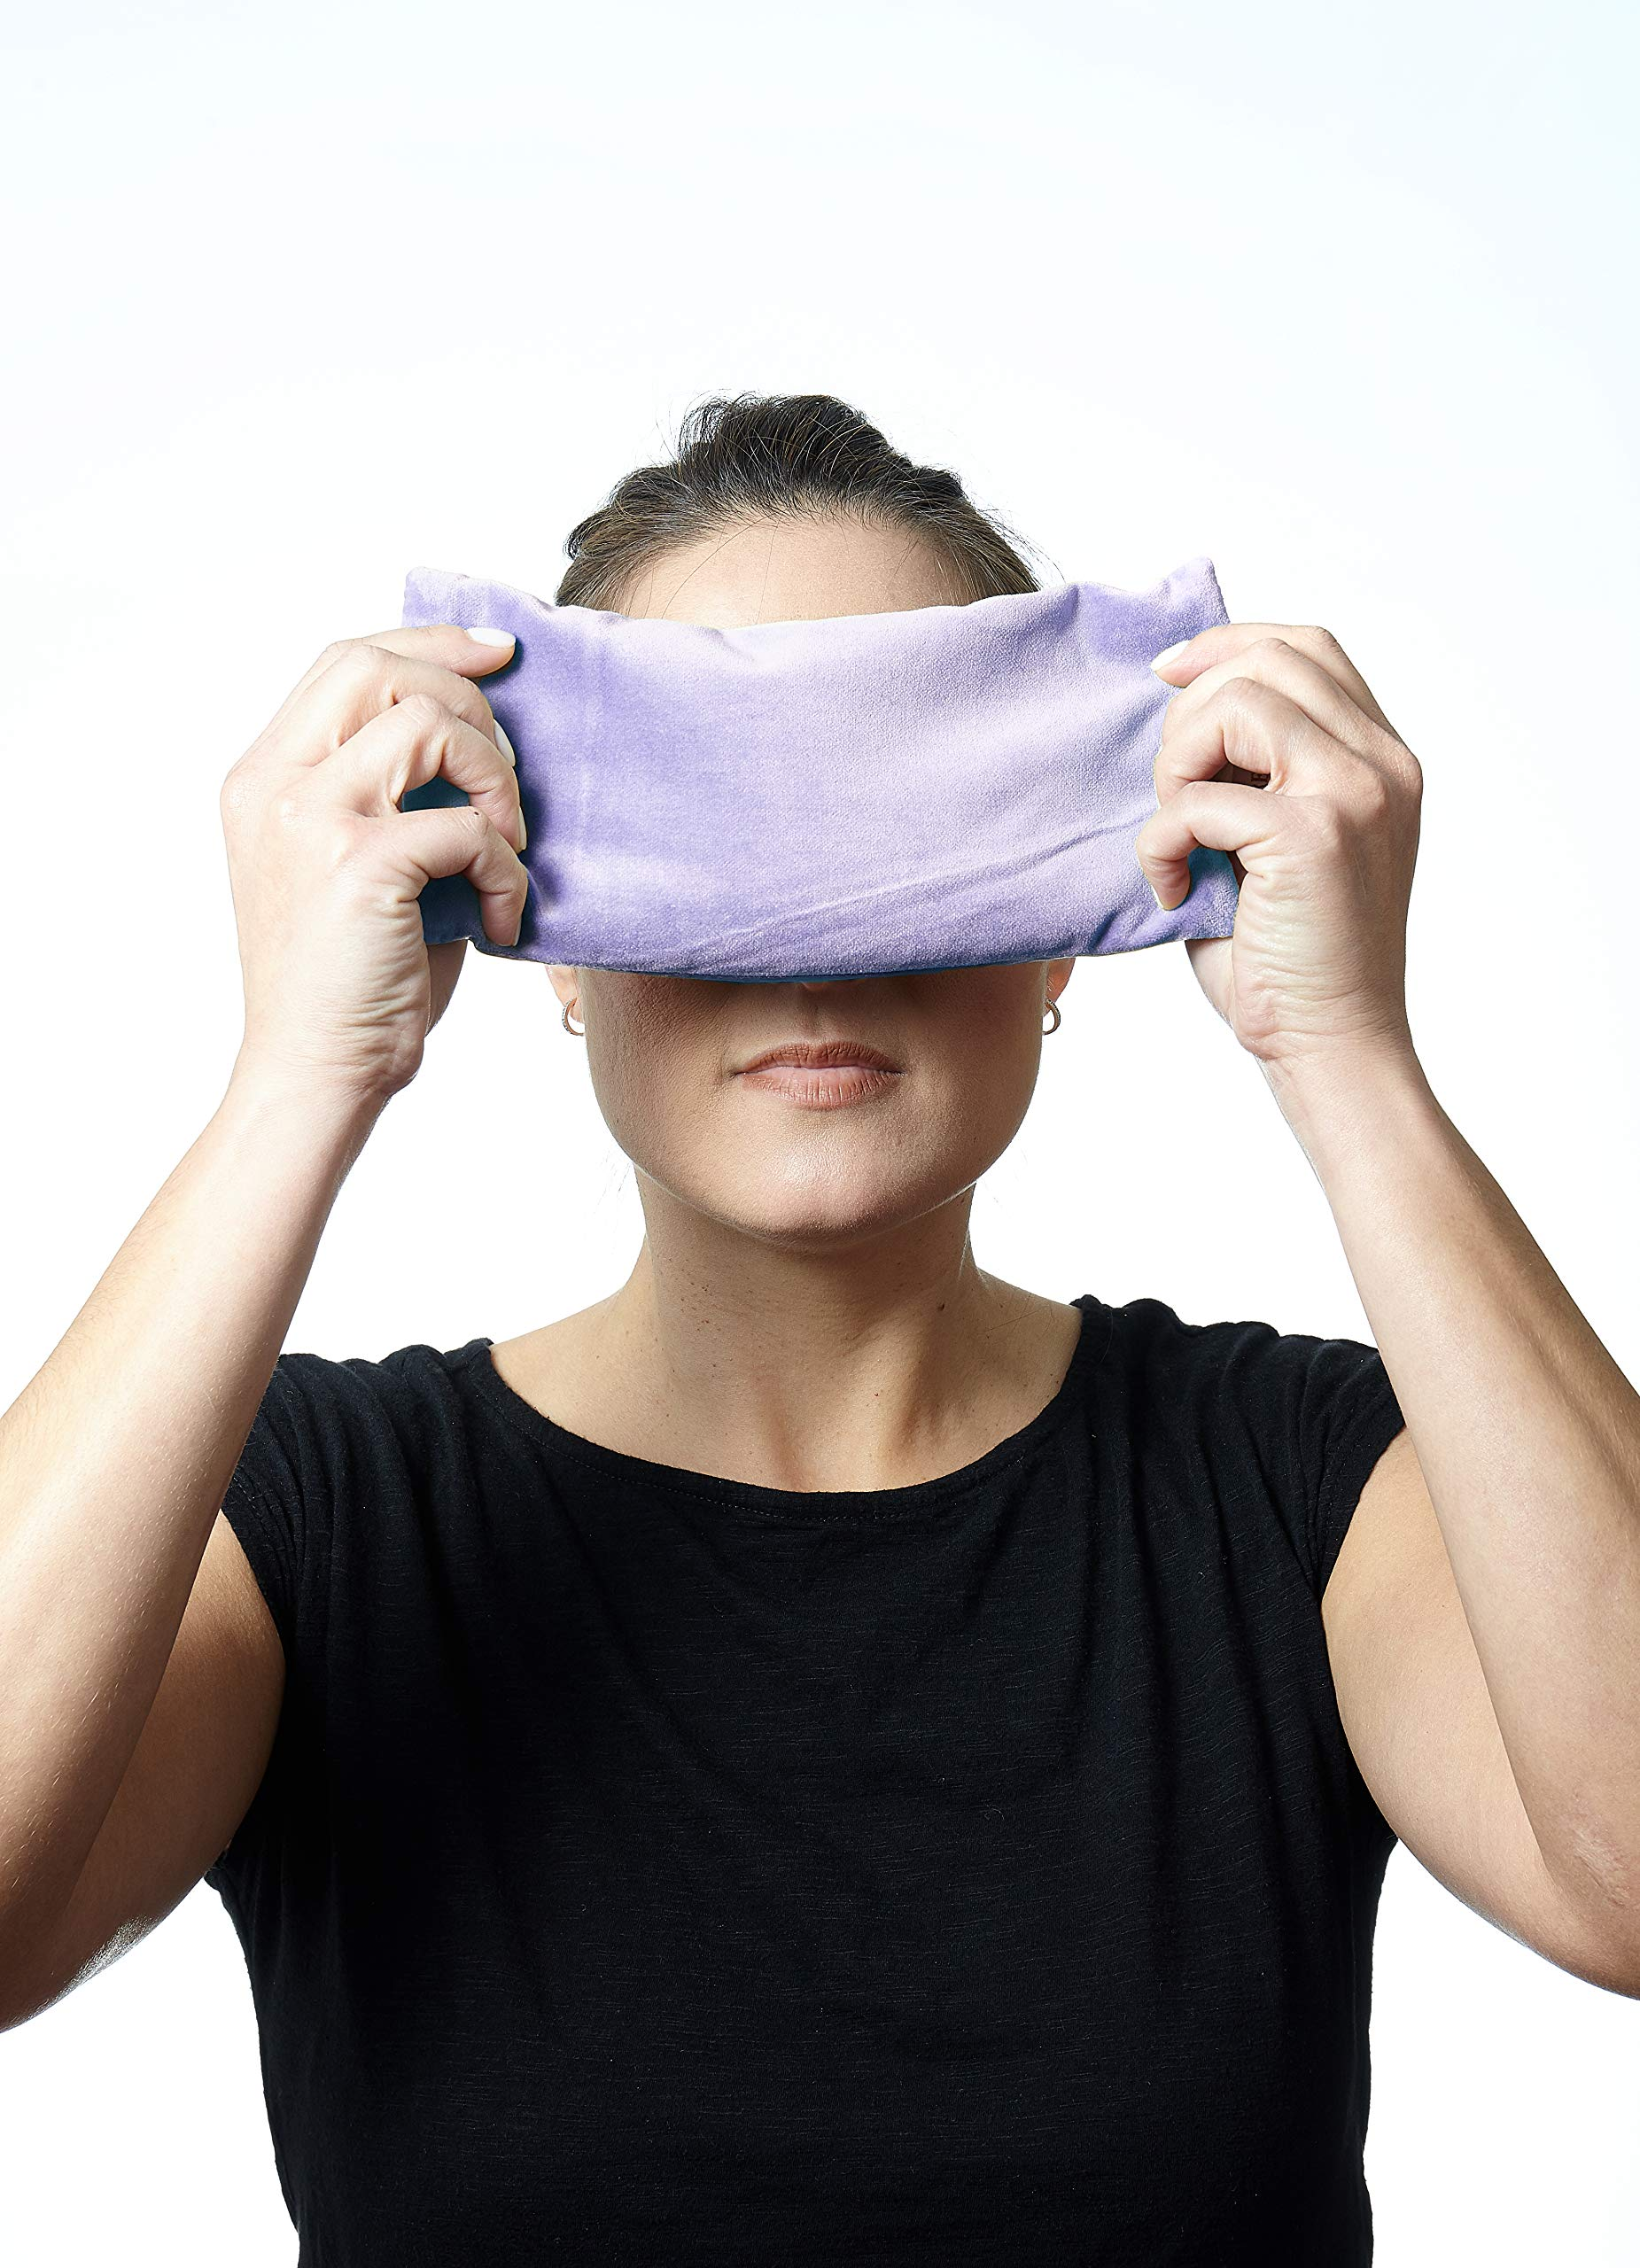 DreamTime Inner Peace Eye Pillow, Lavender Velvet, Soothing Aromatherapy Stress and Headache Relief for Wellness and Relaxation, Pack of 1 by DreamTime